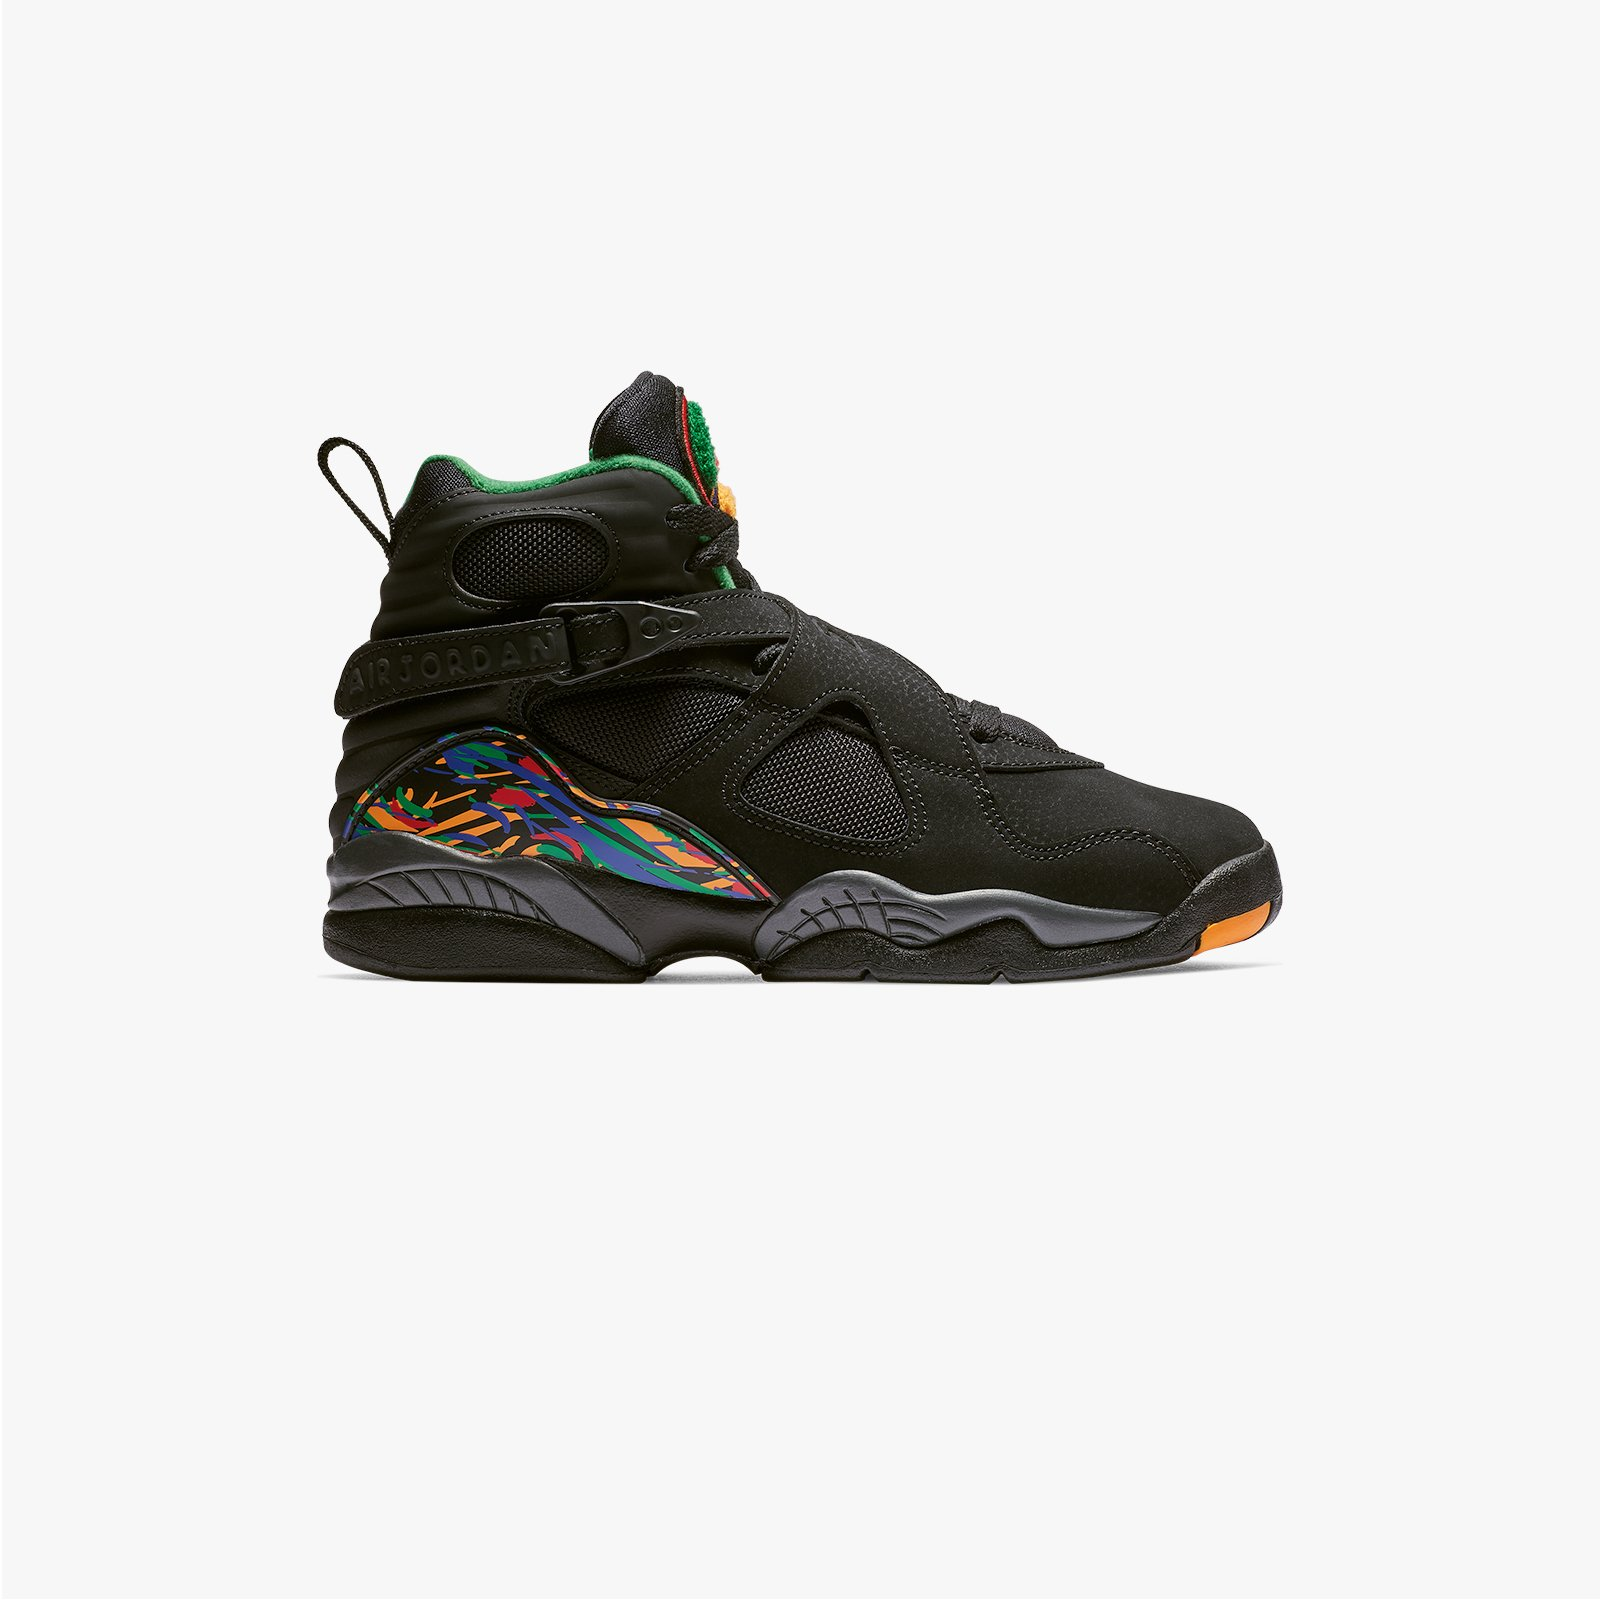 reputable site b5991 31abe Jordan Brand Air Jordan 8 Retro (GS) - 305368-004 ...